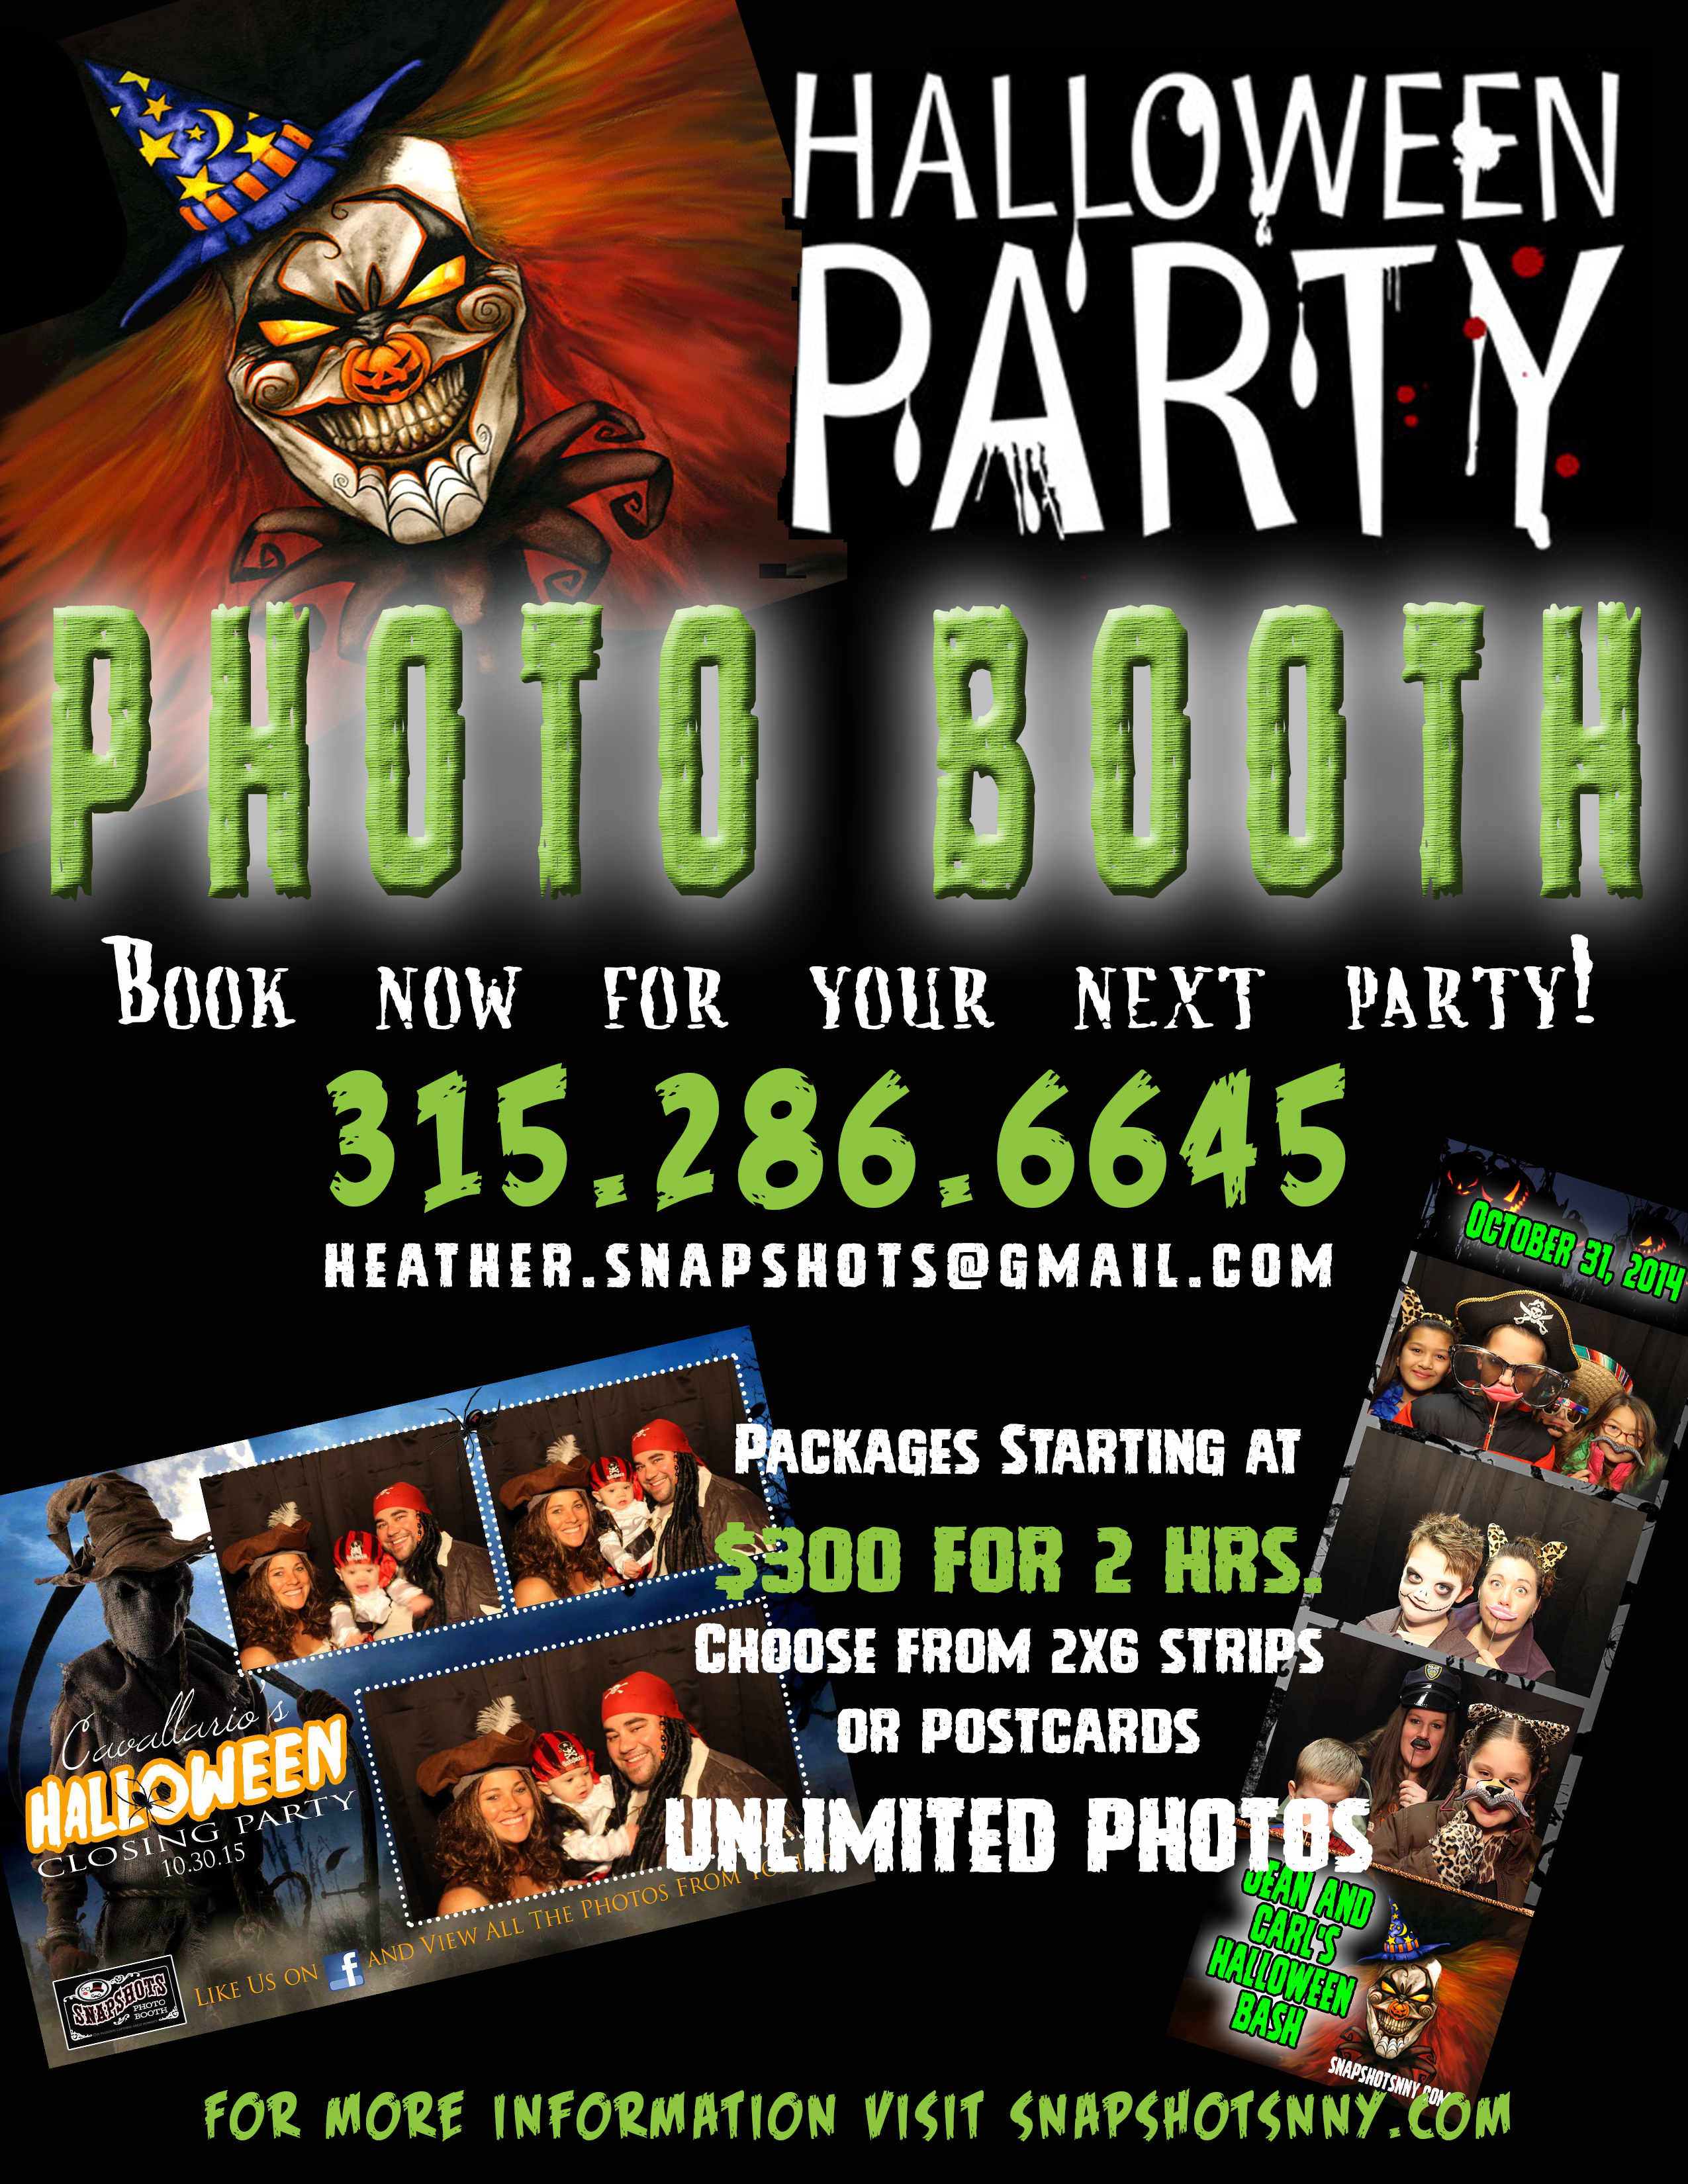 MAKE YOUR PARTY THE TALK OF THE TOWN WITH SNAPSHOTS PHOTO BUS AND BOOTHS…